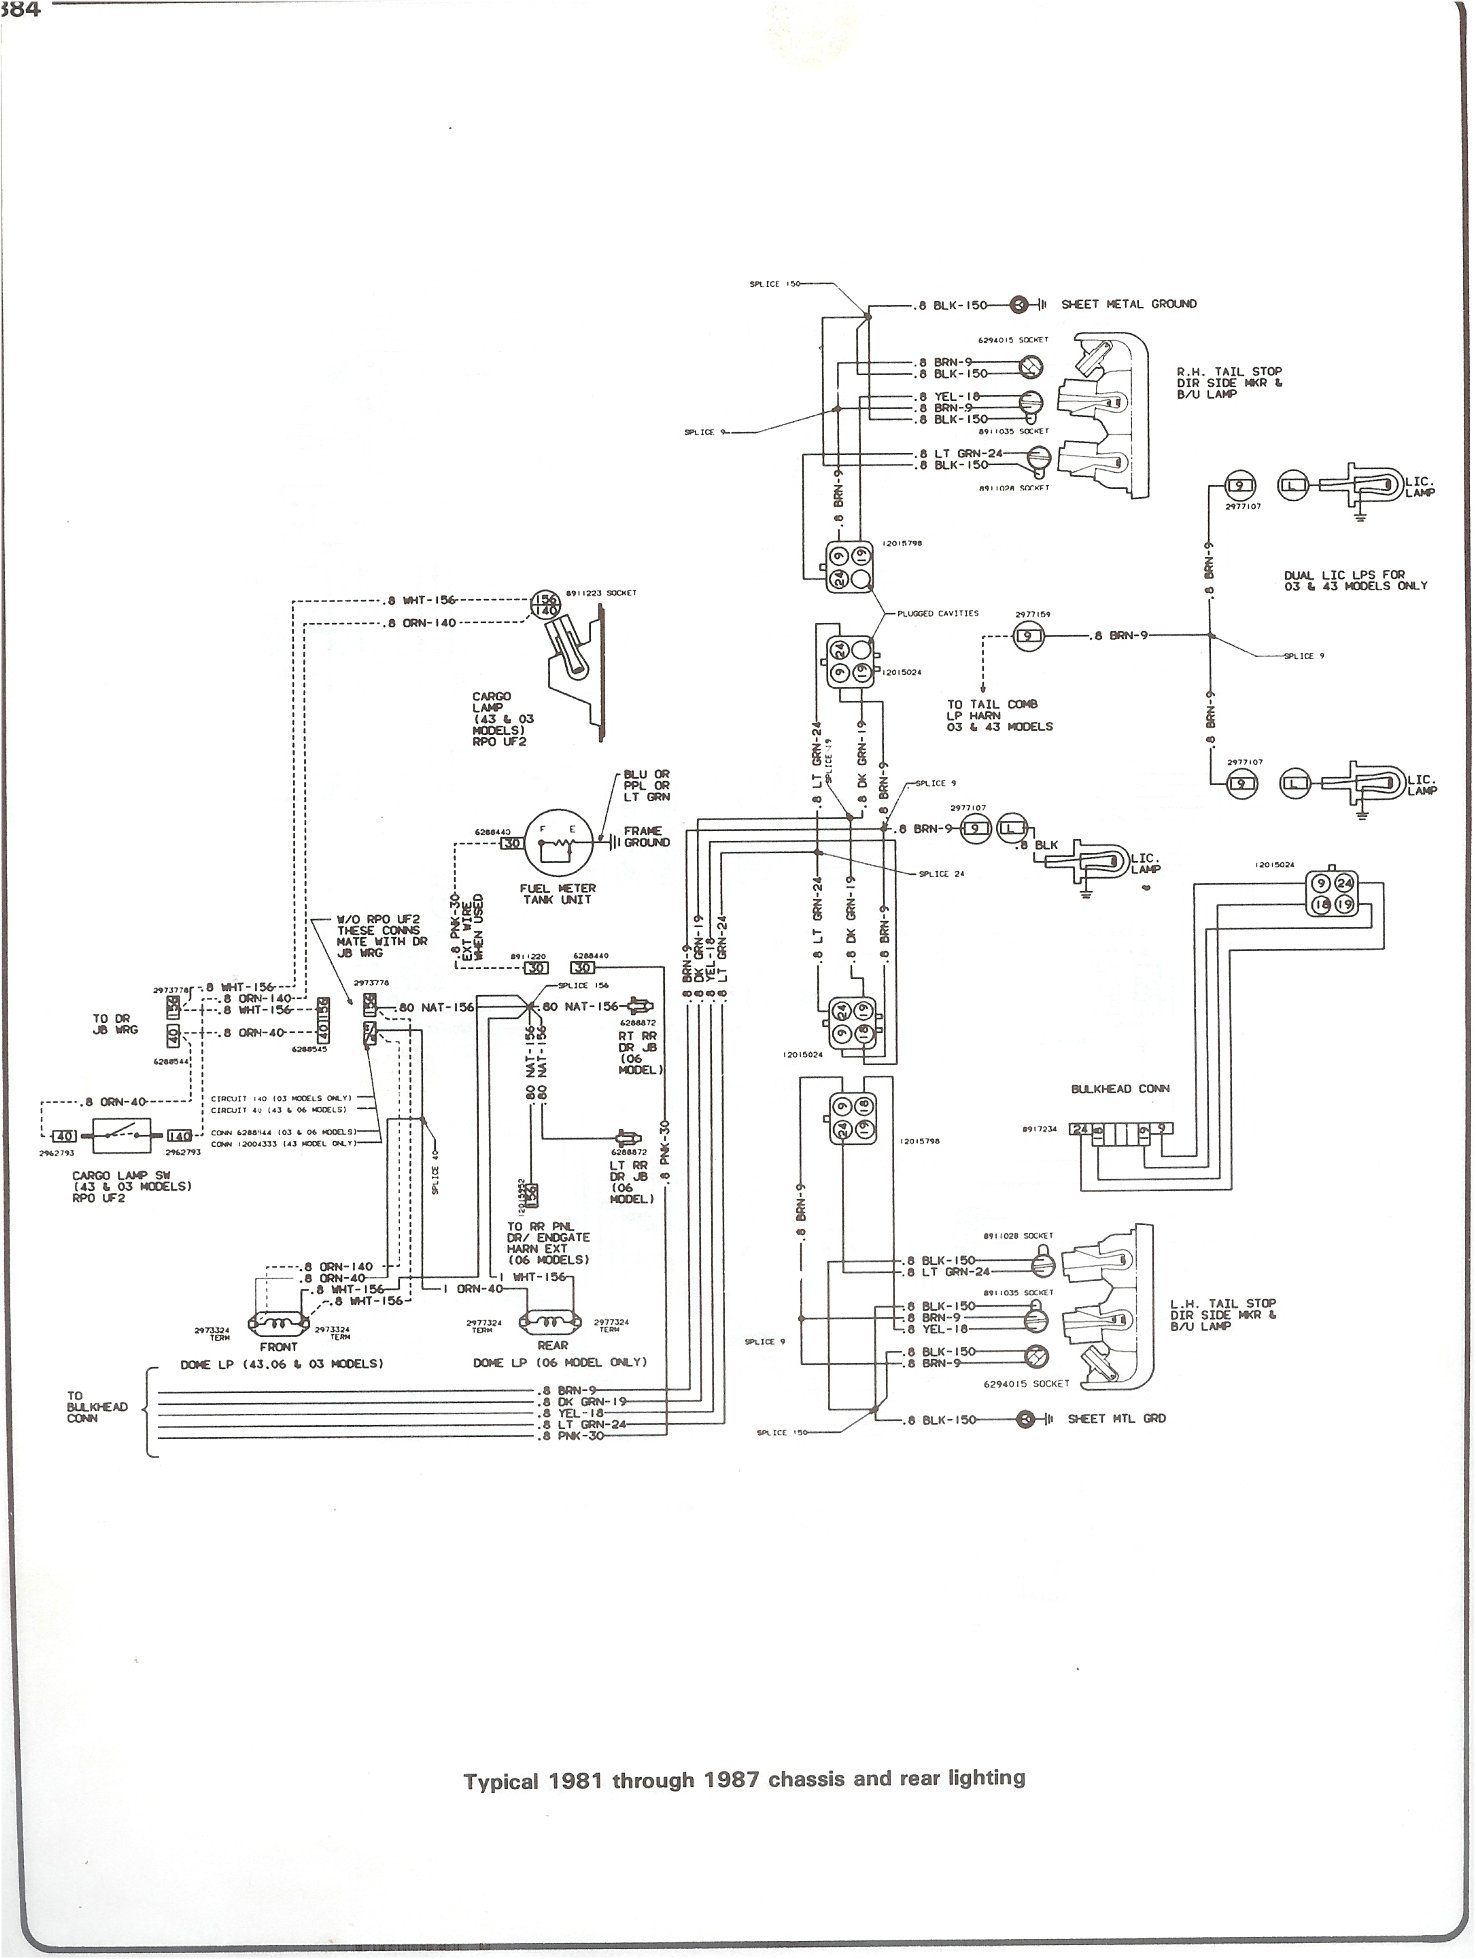 computer front panel wiring diagram